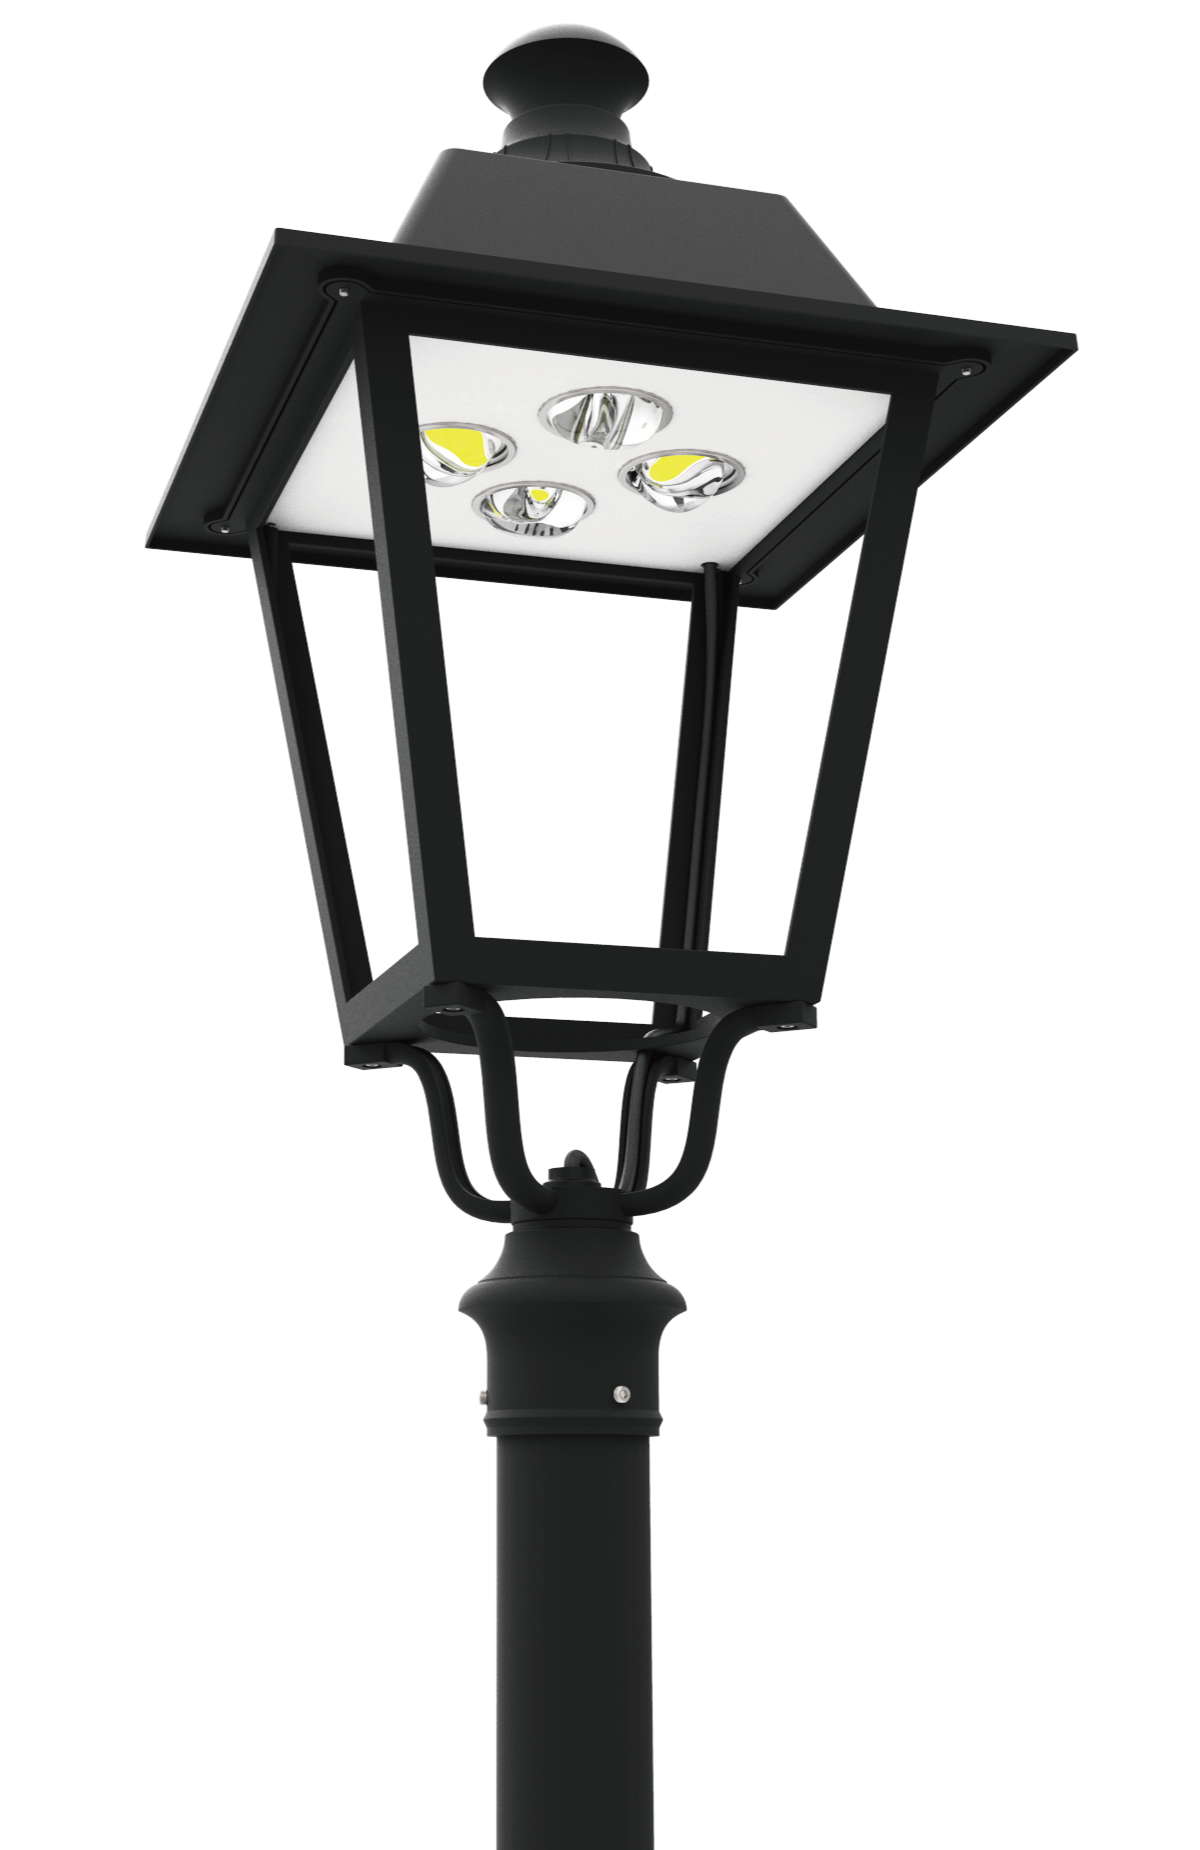 Led pt 710 series led post top lantern light fixtures Popular light fixtures 2017